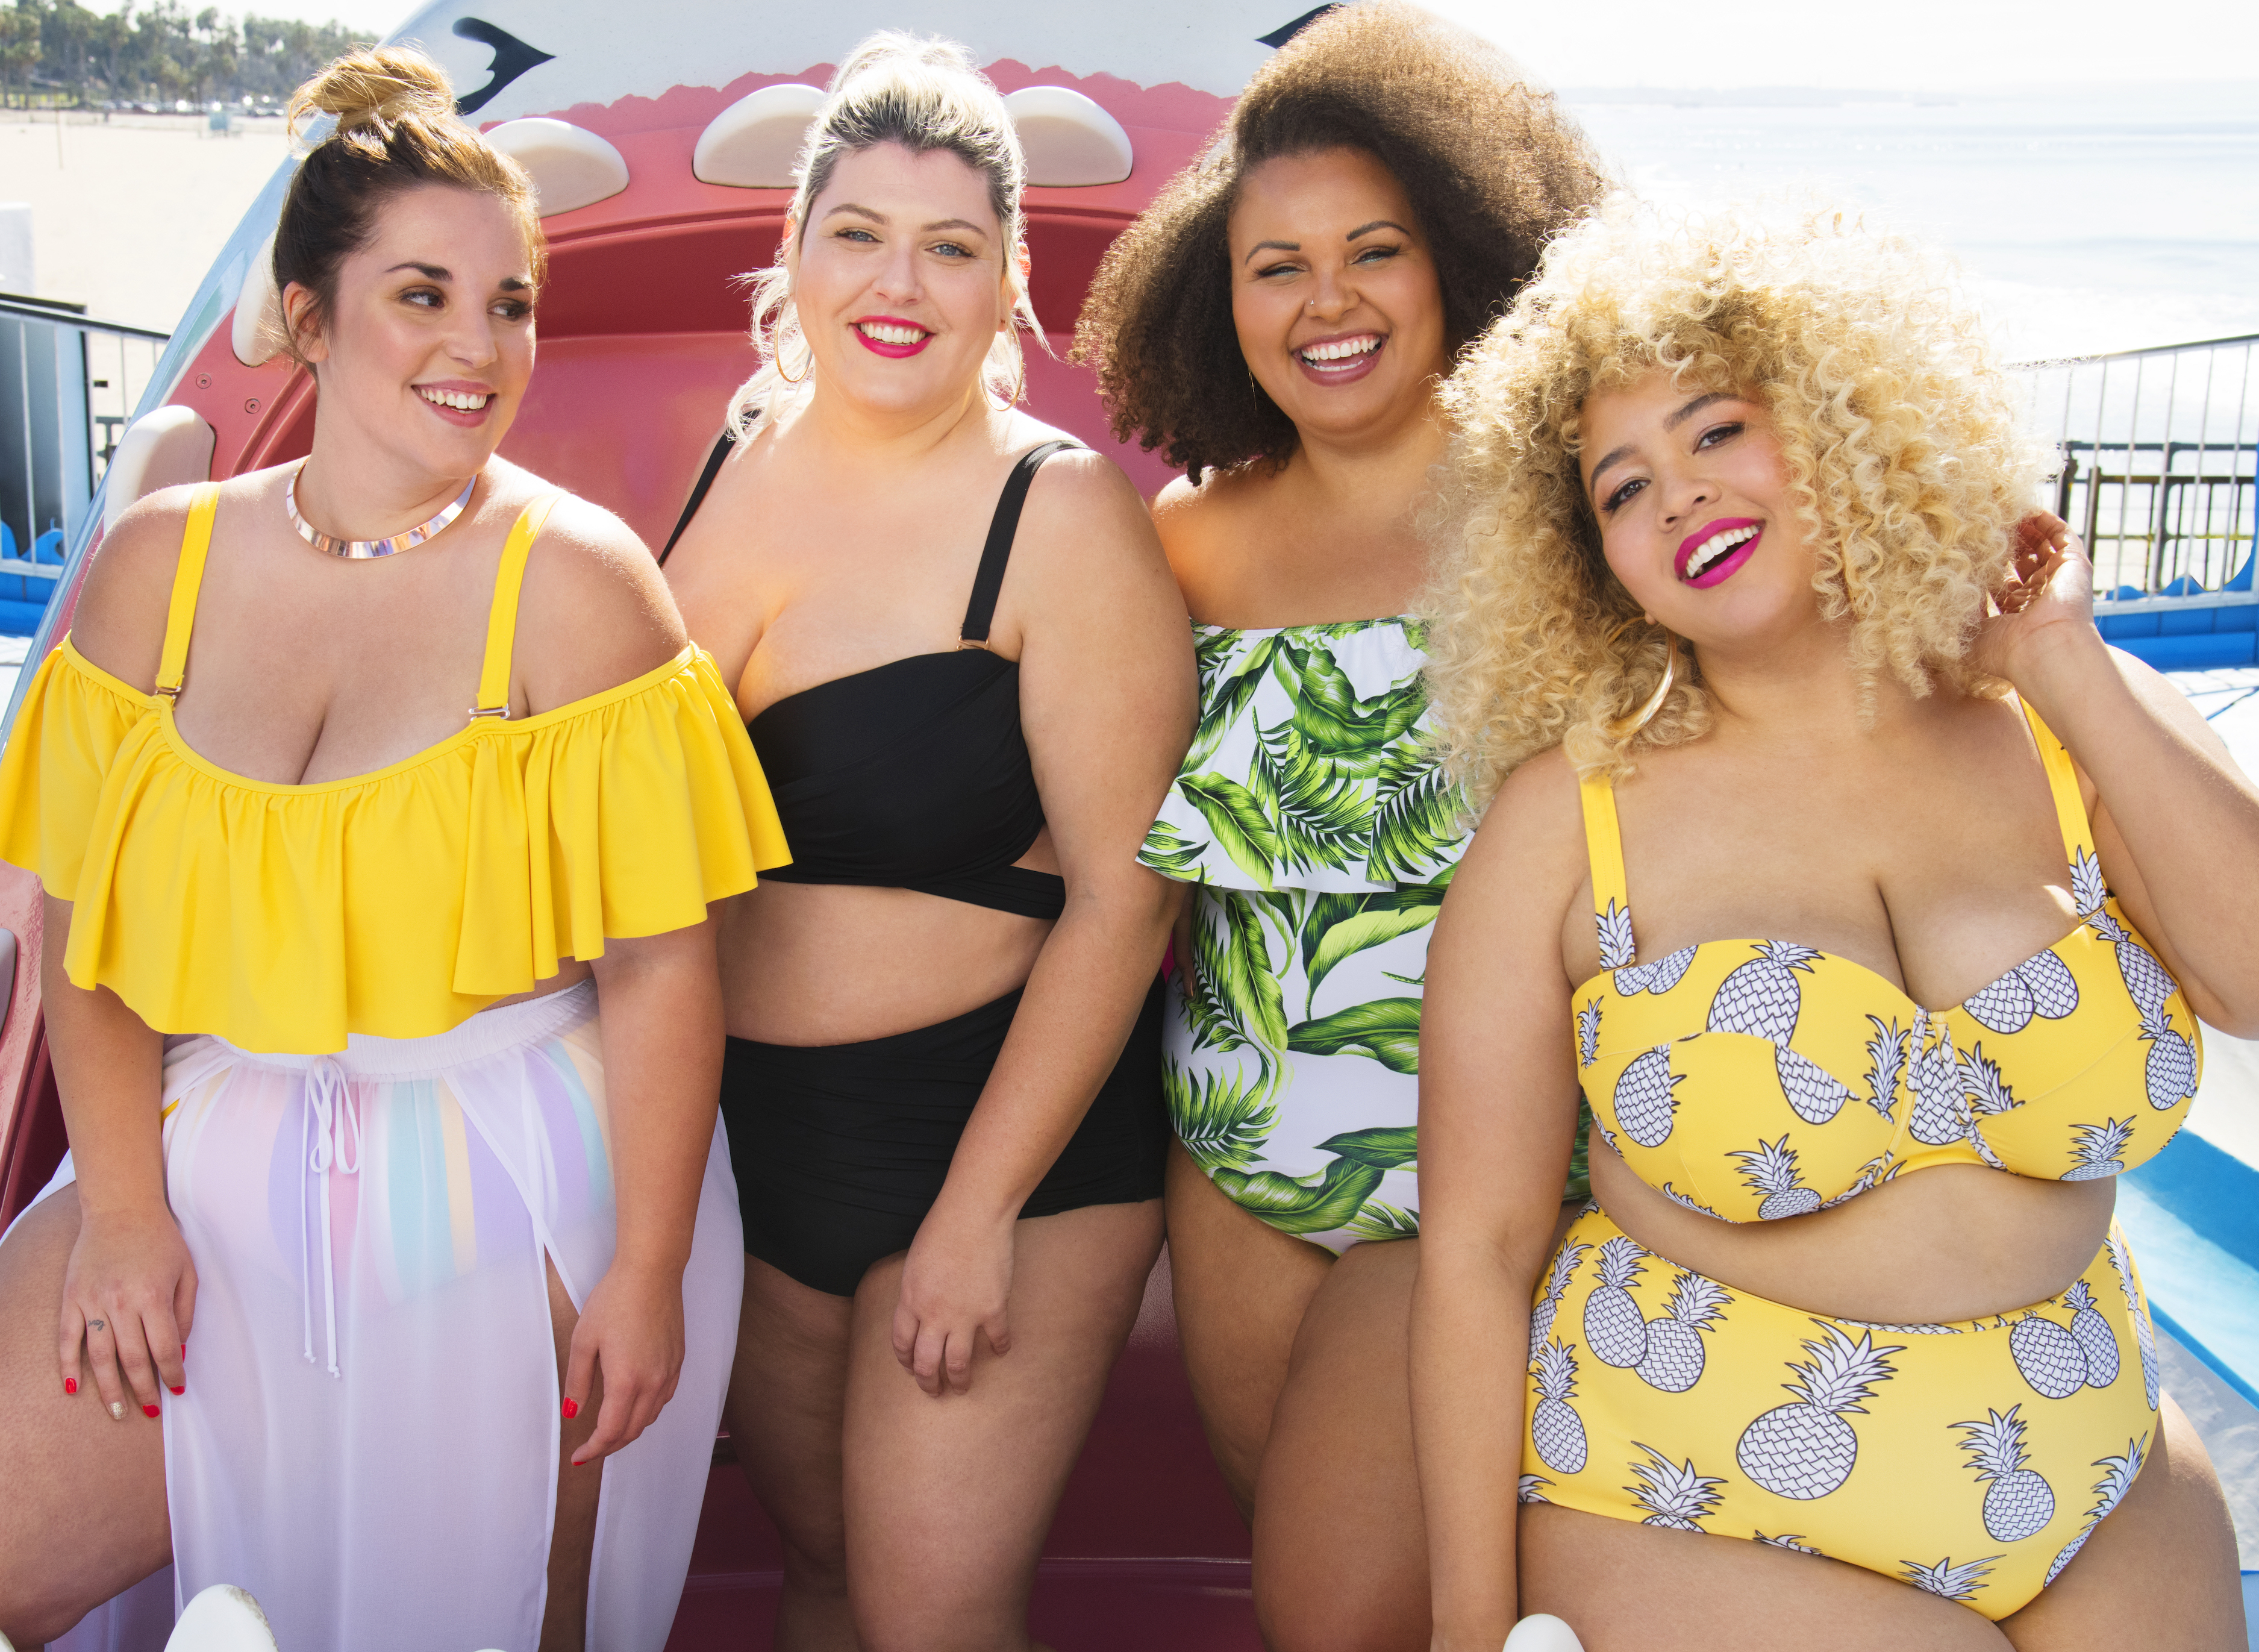 GabiFresh and Swimsuits for All Want You To Feel Empowered This Summer